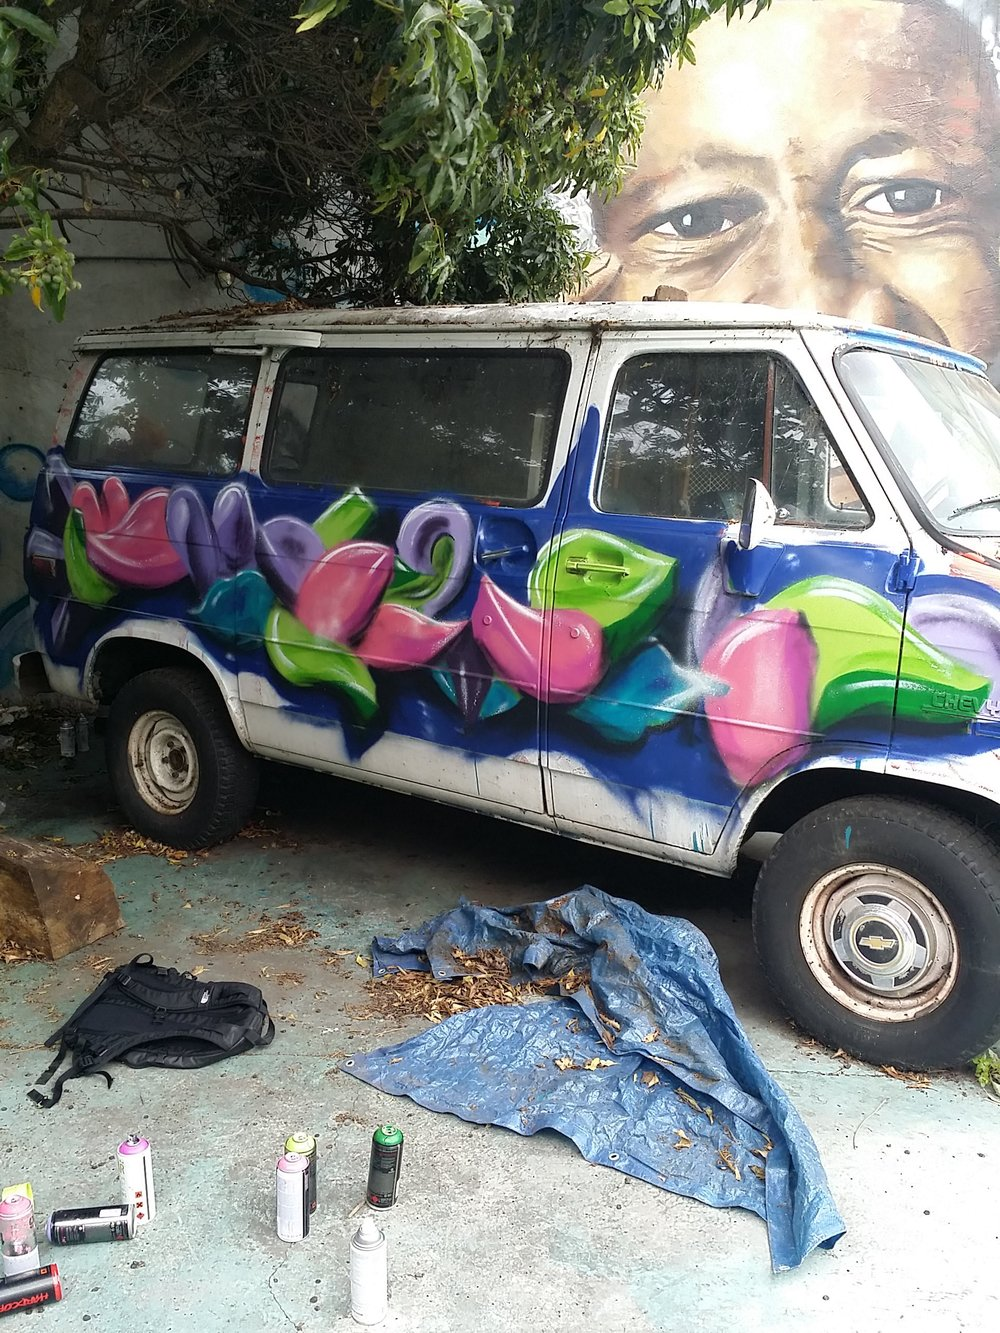 2015- Experimenting with spraycans on a van